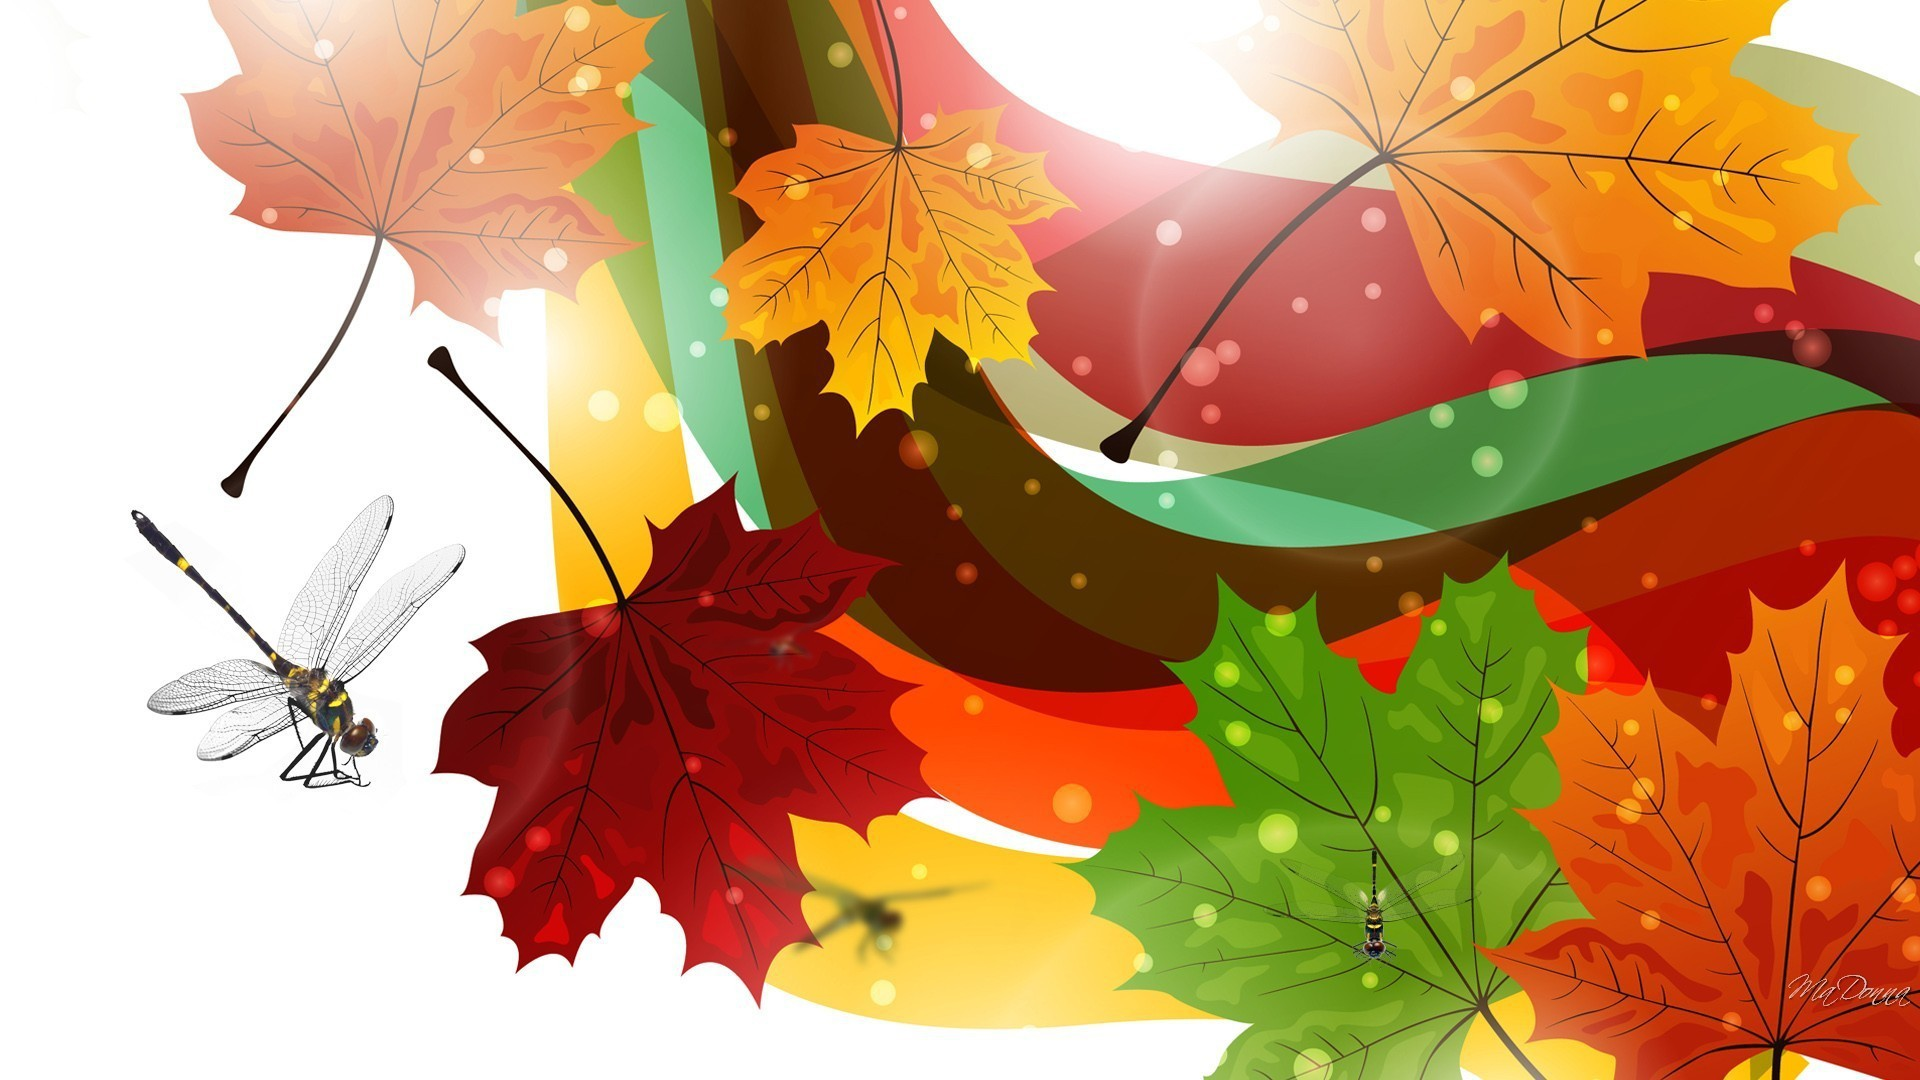 Dragonflies-of-fall-1920x1080-fall-via-www-all-in-wallpaper-wp3804892